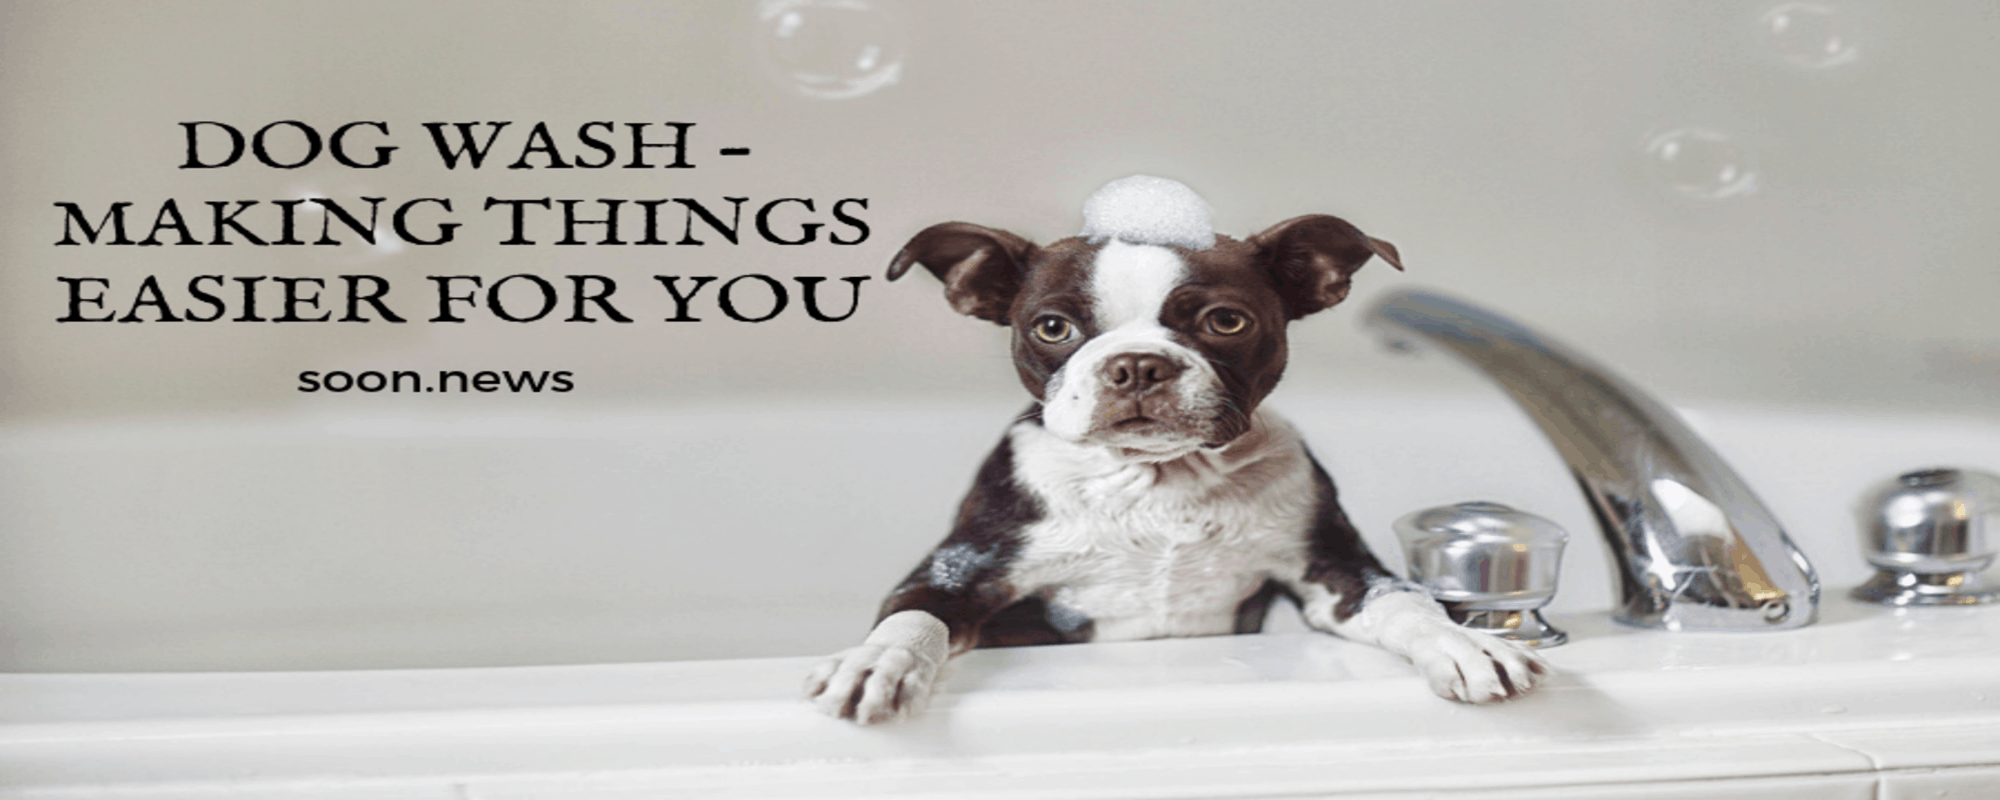 DOG WASH – MAKING THINGS EASIER FOR YOU